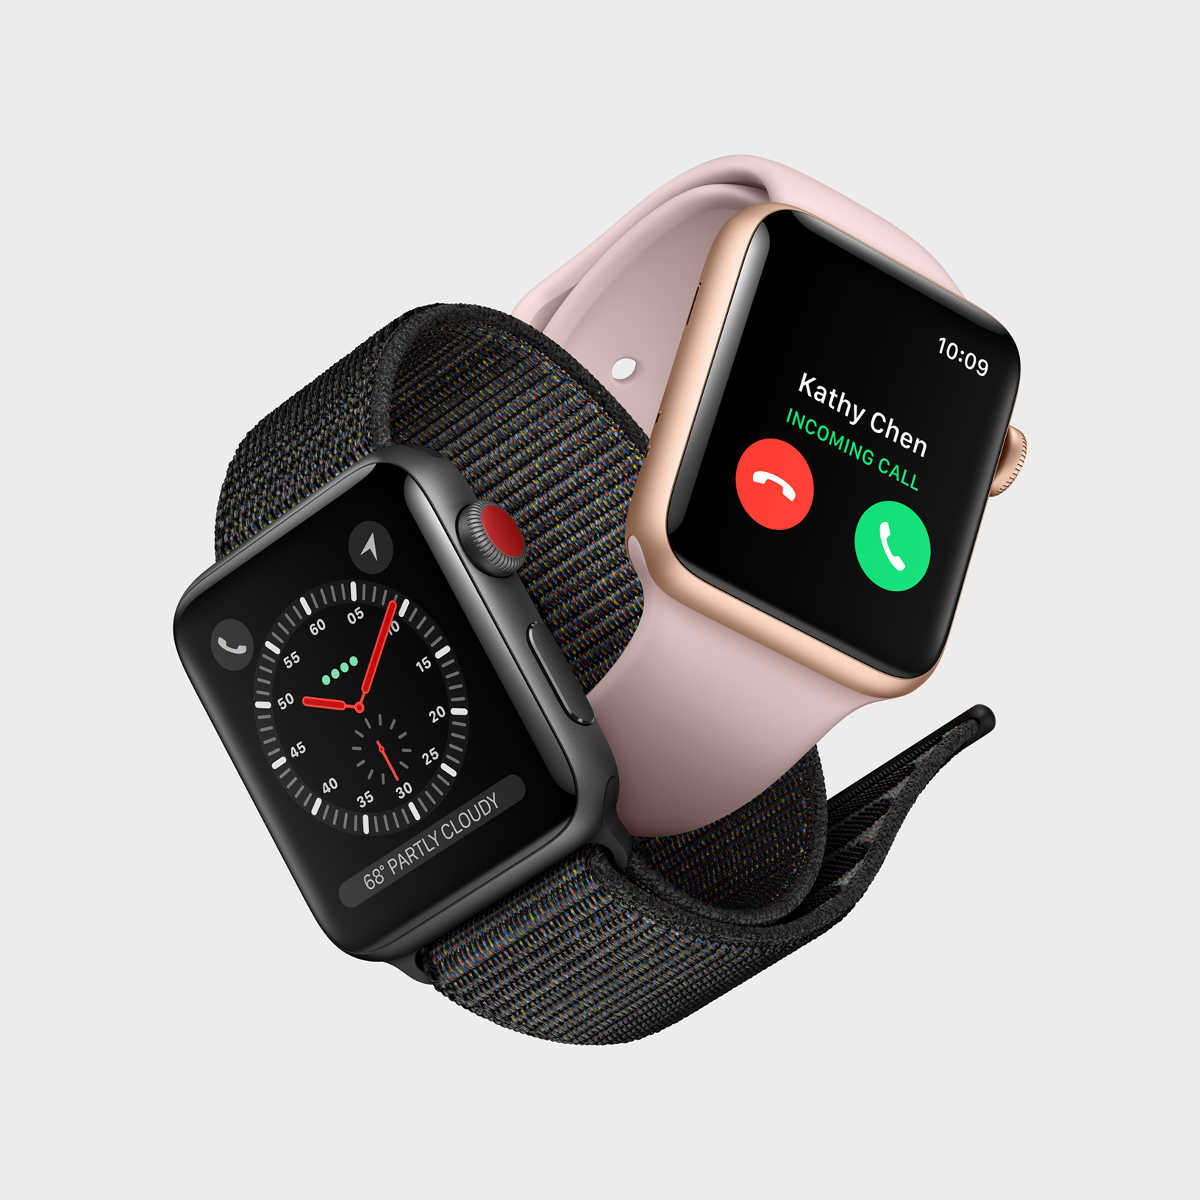 Apple Watch Series 3 - 1